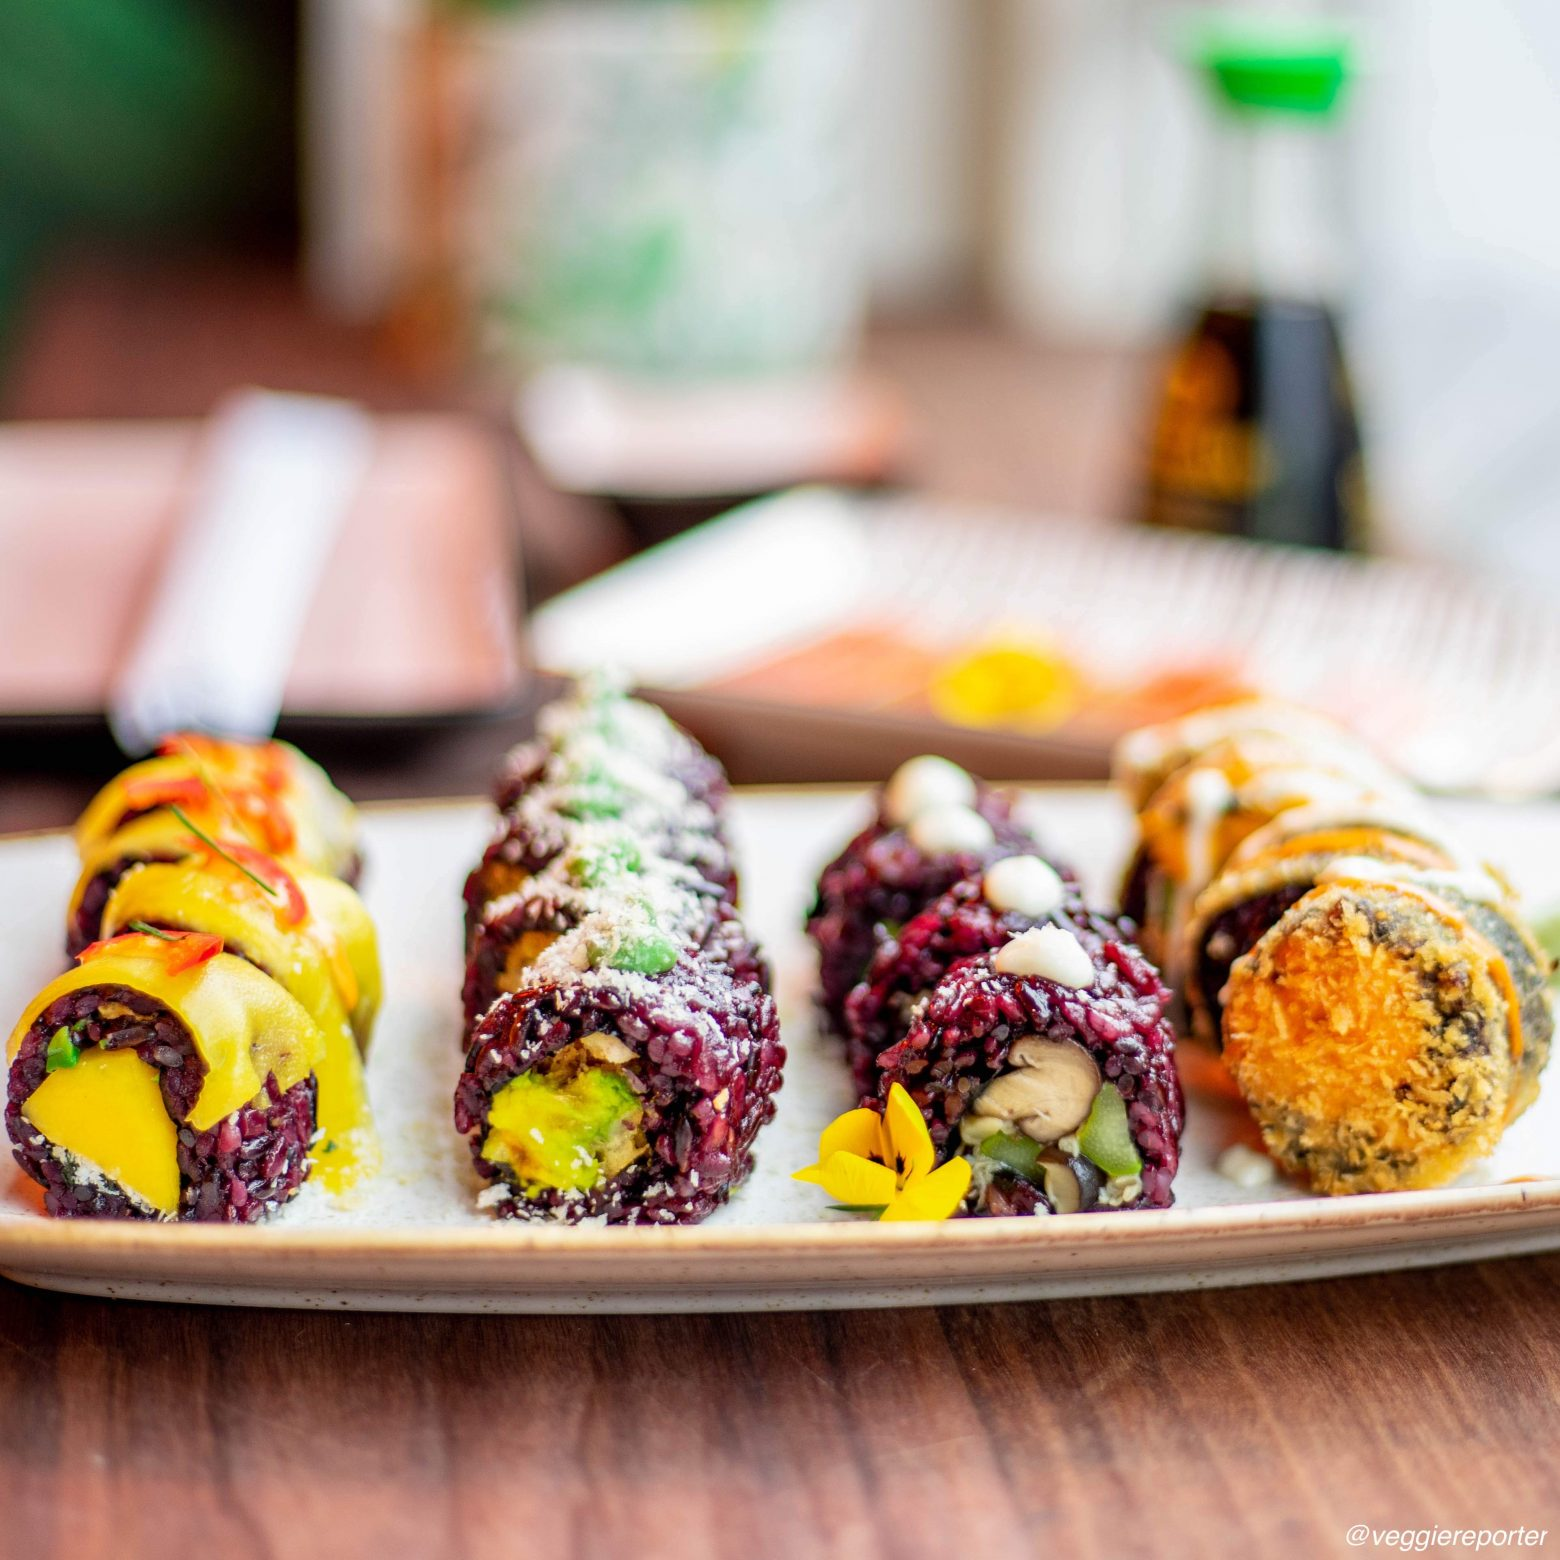 A Second Vegan Sushi Restaurant in Amsterdam